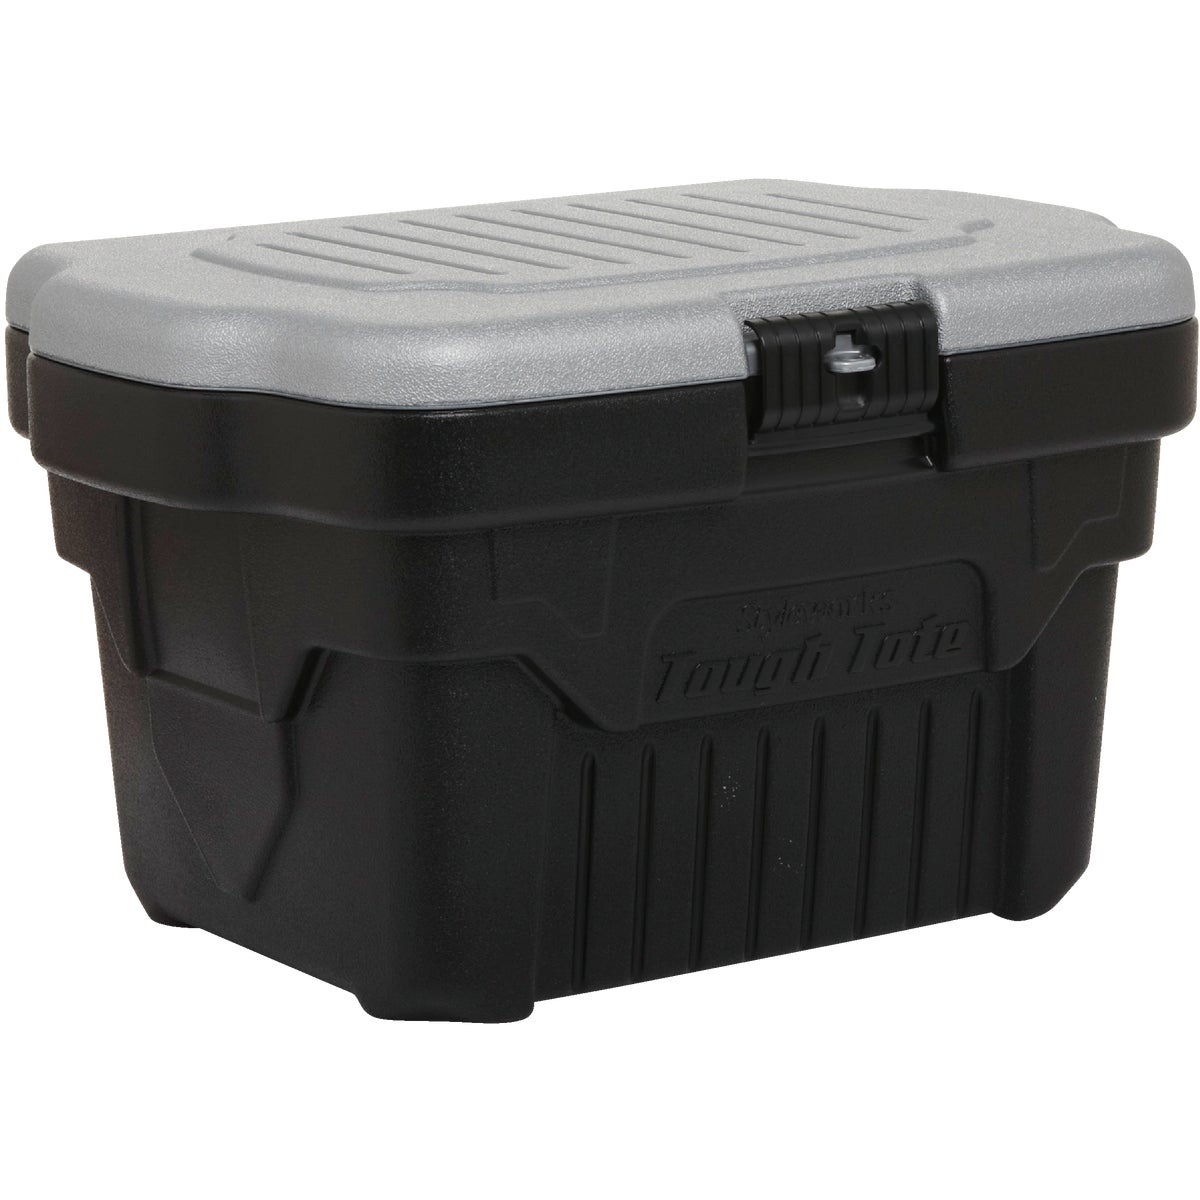 10.5 GALLON TOUGH TOTE - 00304 by Western Industries